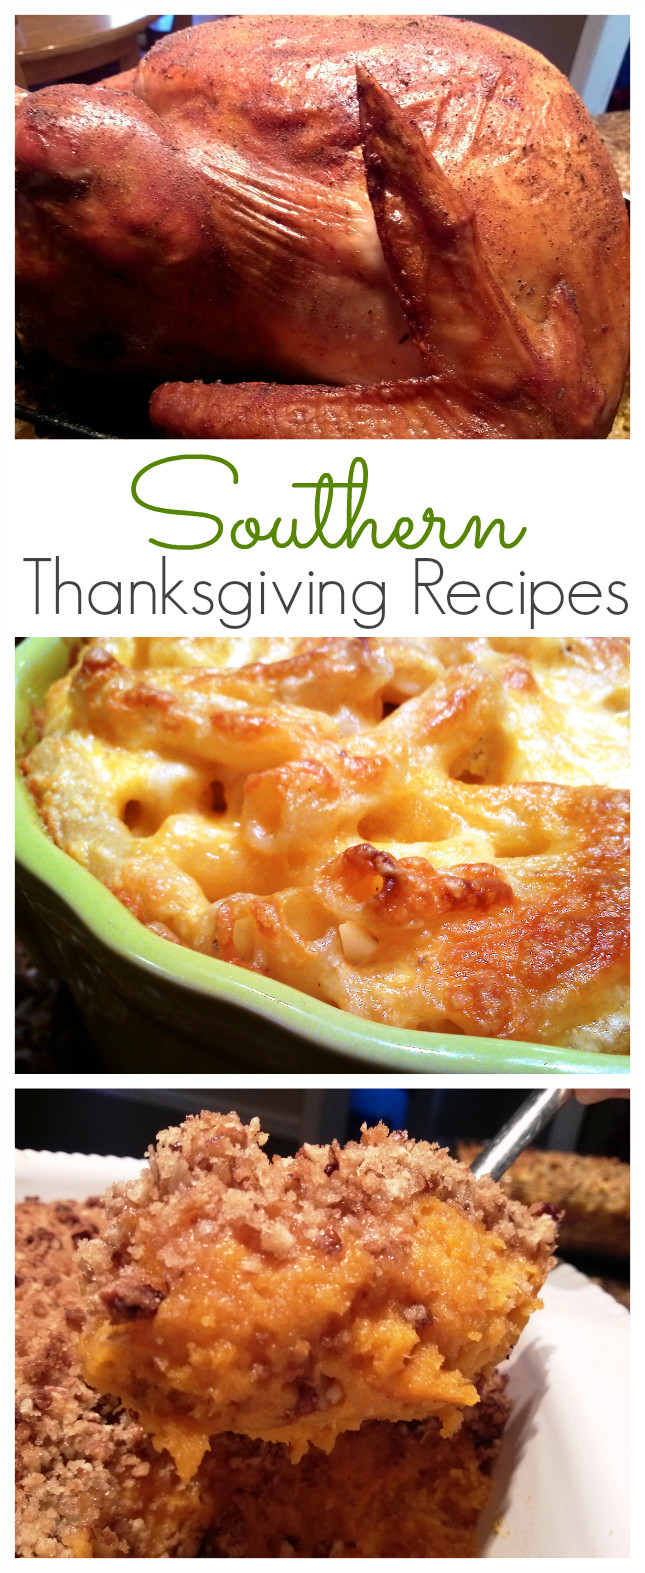 Southern Thanksgiving Dinner Menu  South Your Mouth Southern Thanksgiving Recipes